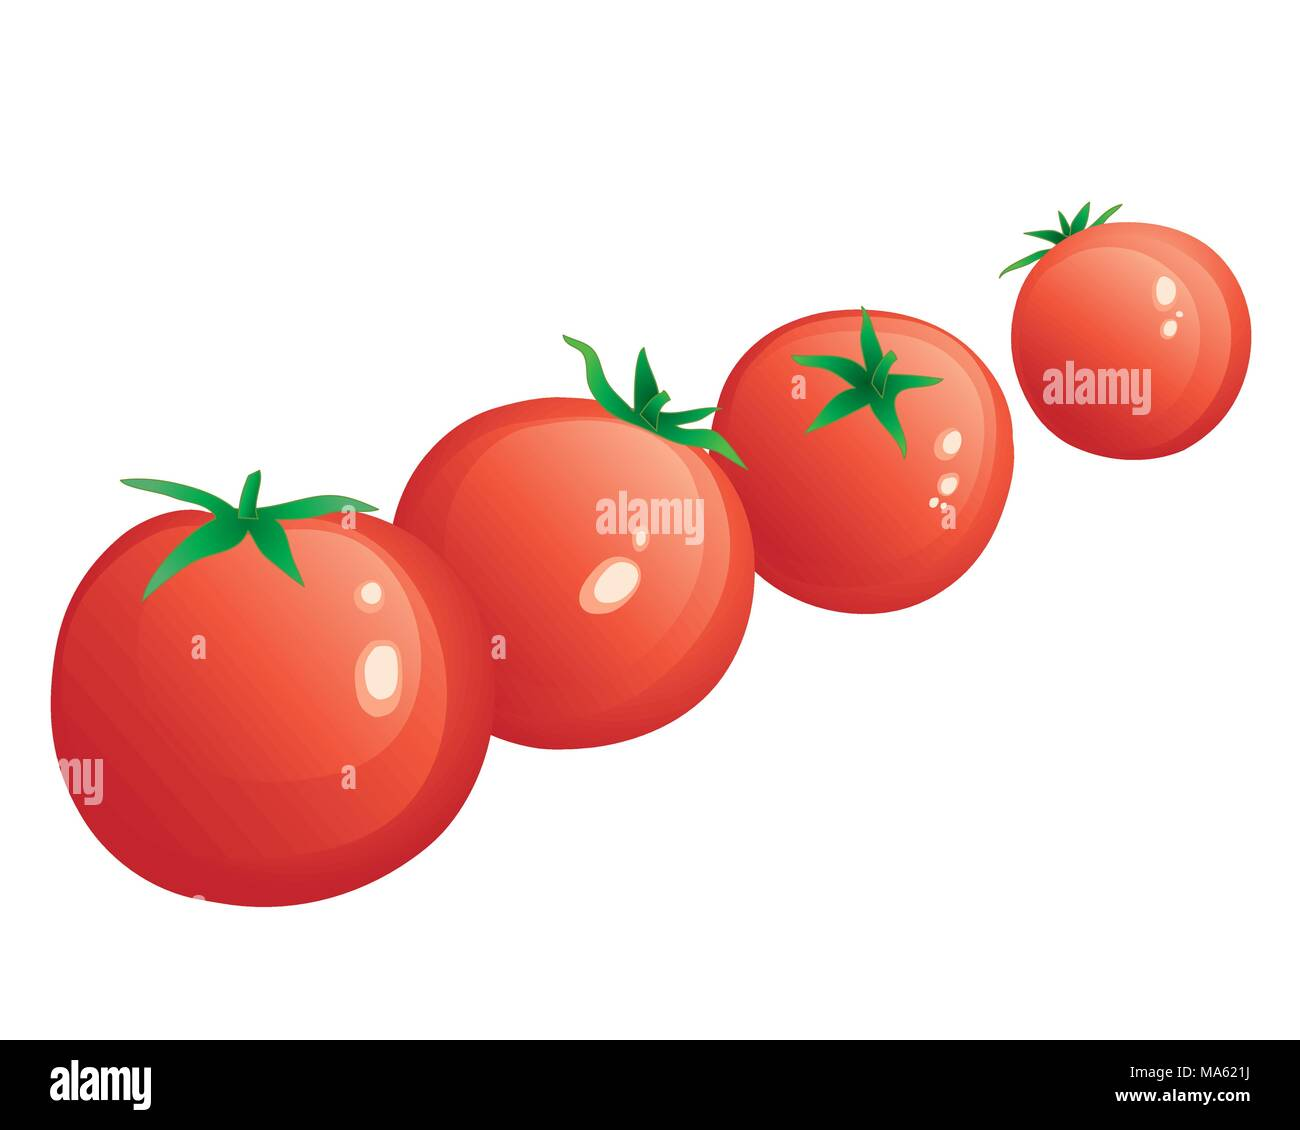 a vector illustration in eps 10 format of a row of freshly picked red cherry tomatoes isolated on a white background - Stock Vector